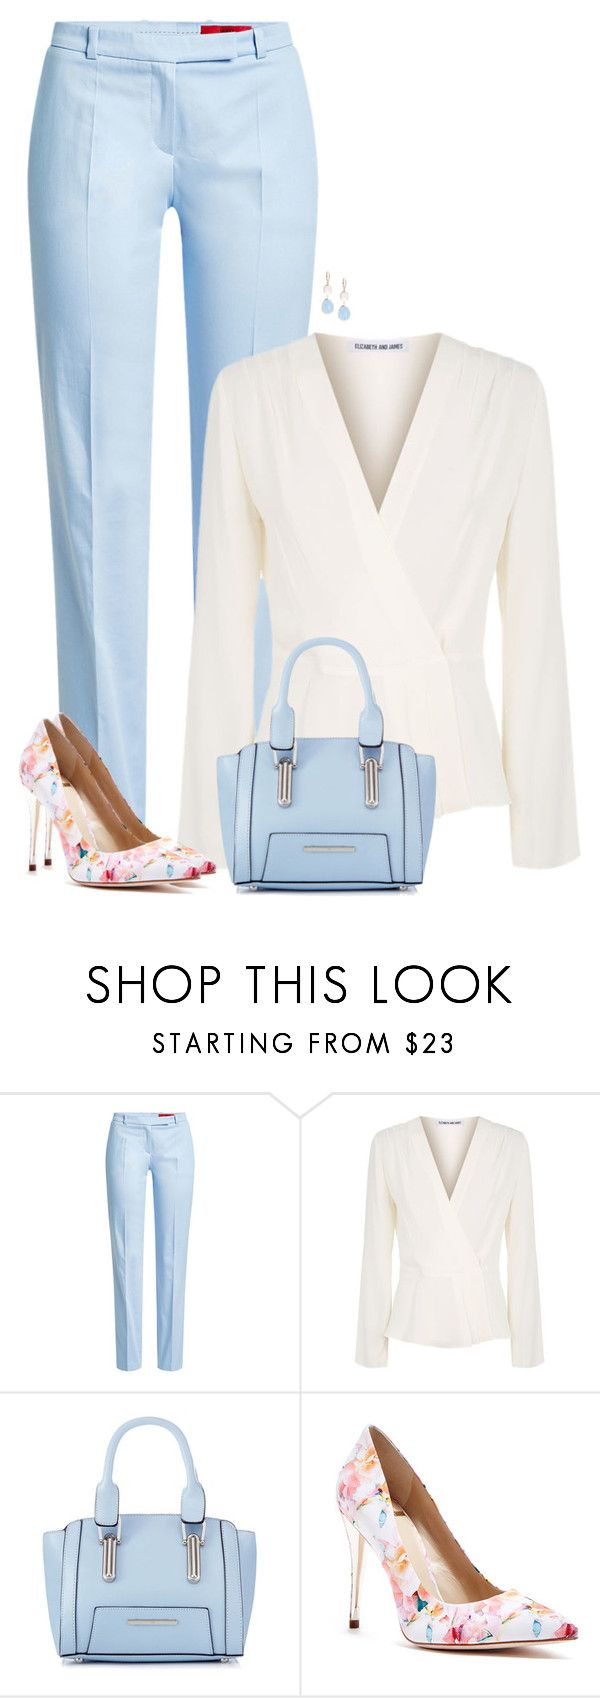 """""""Blue Trousers"""" by sherbear1974 ❤ liked on Polyvore featuring HUGO, Elizabeth and James, Red Herring, GUESS by Marciano and Saks Fifth Avenue"""